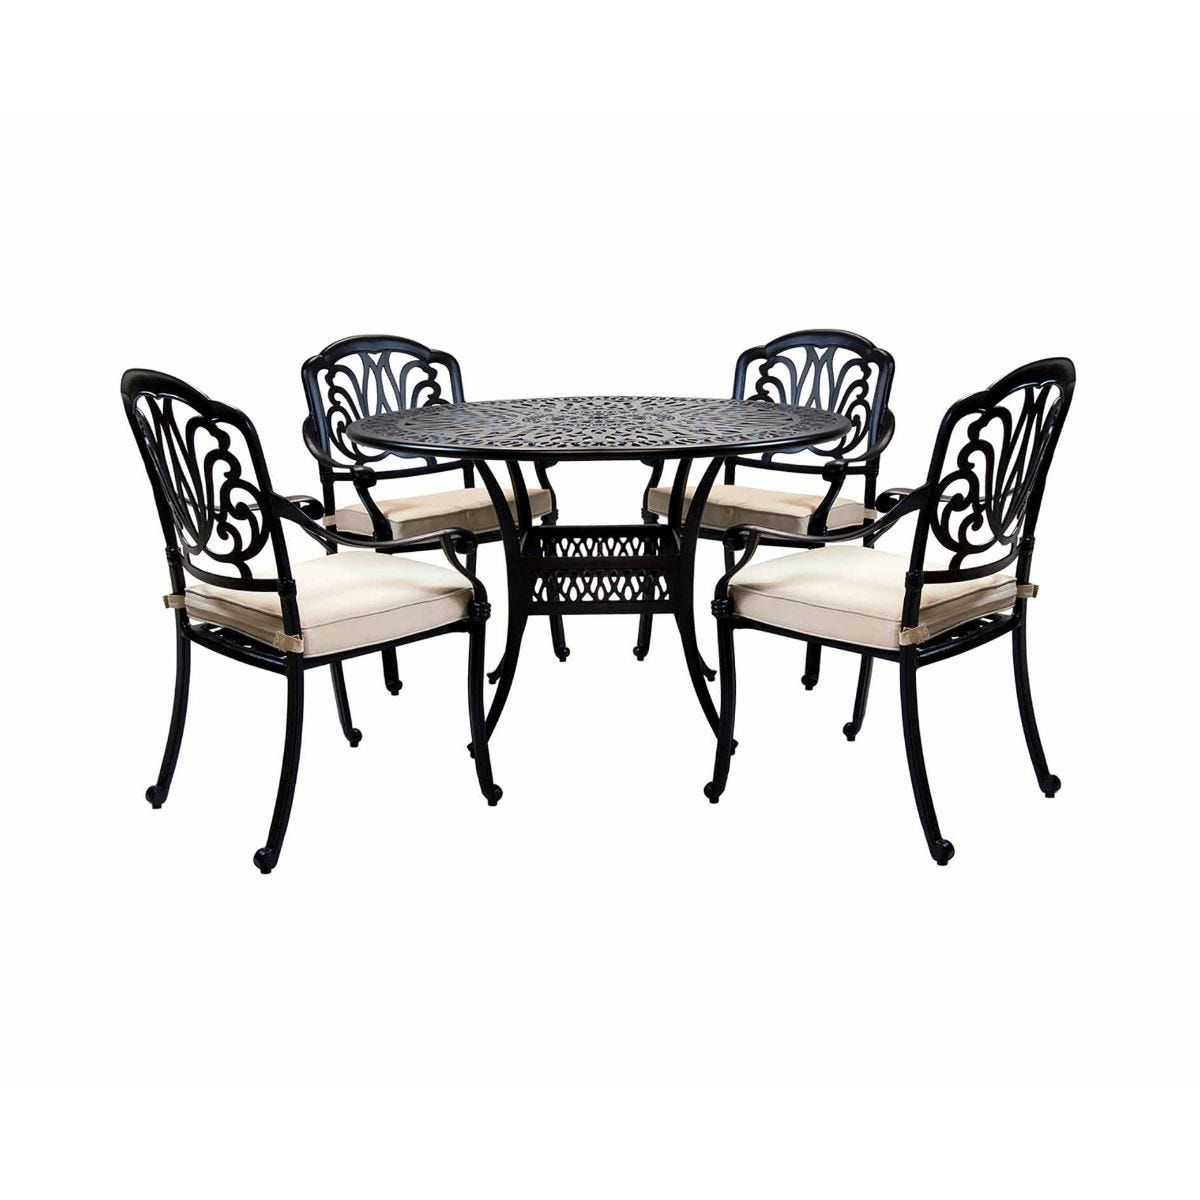 Charles Bentley Cast Iron Garden Dining Set 4 Seater, Black